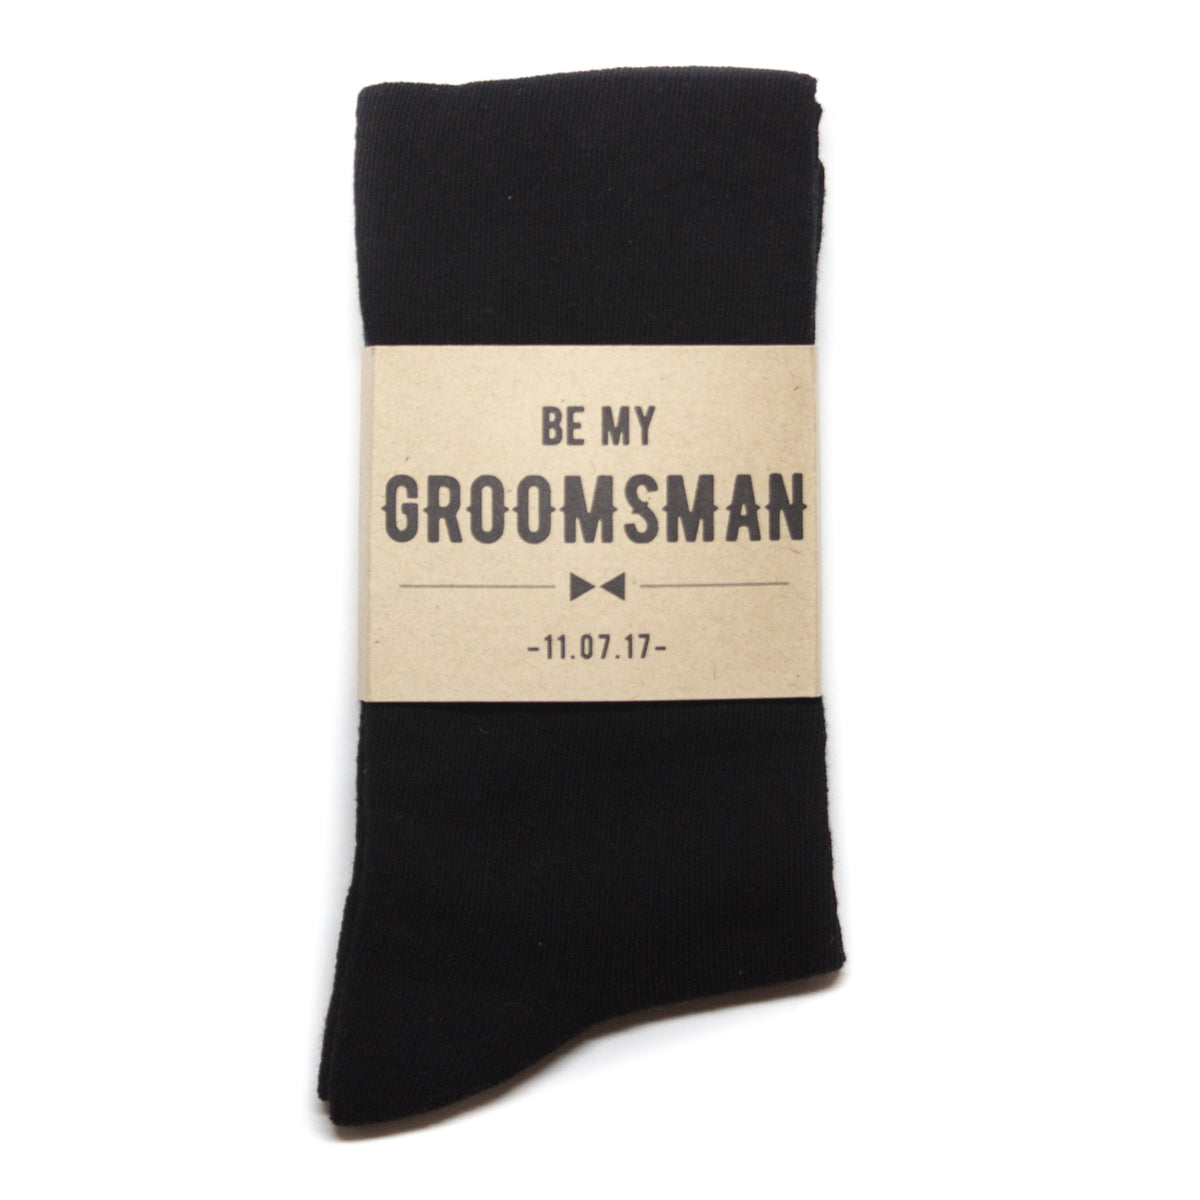 Groomsmen Sock Proposal Idea | No Cold Feet Co.